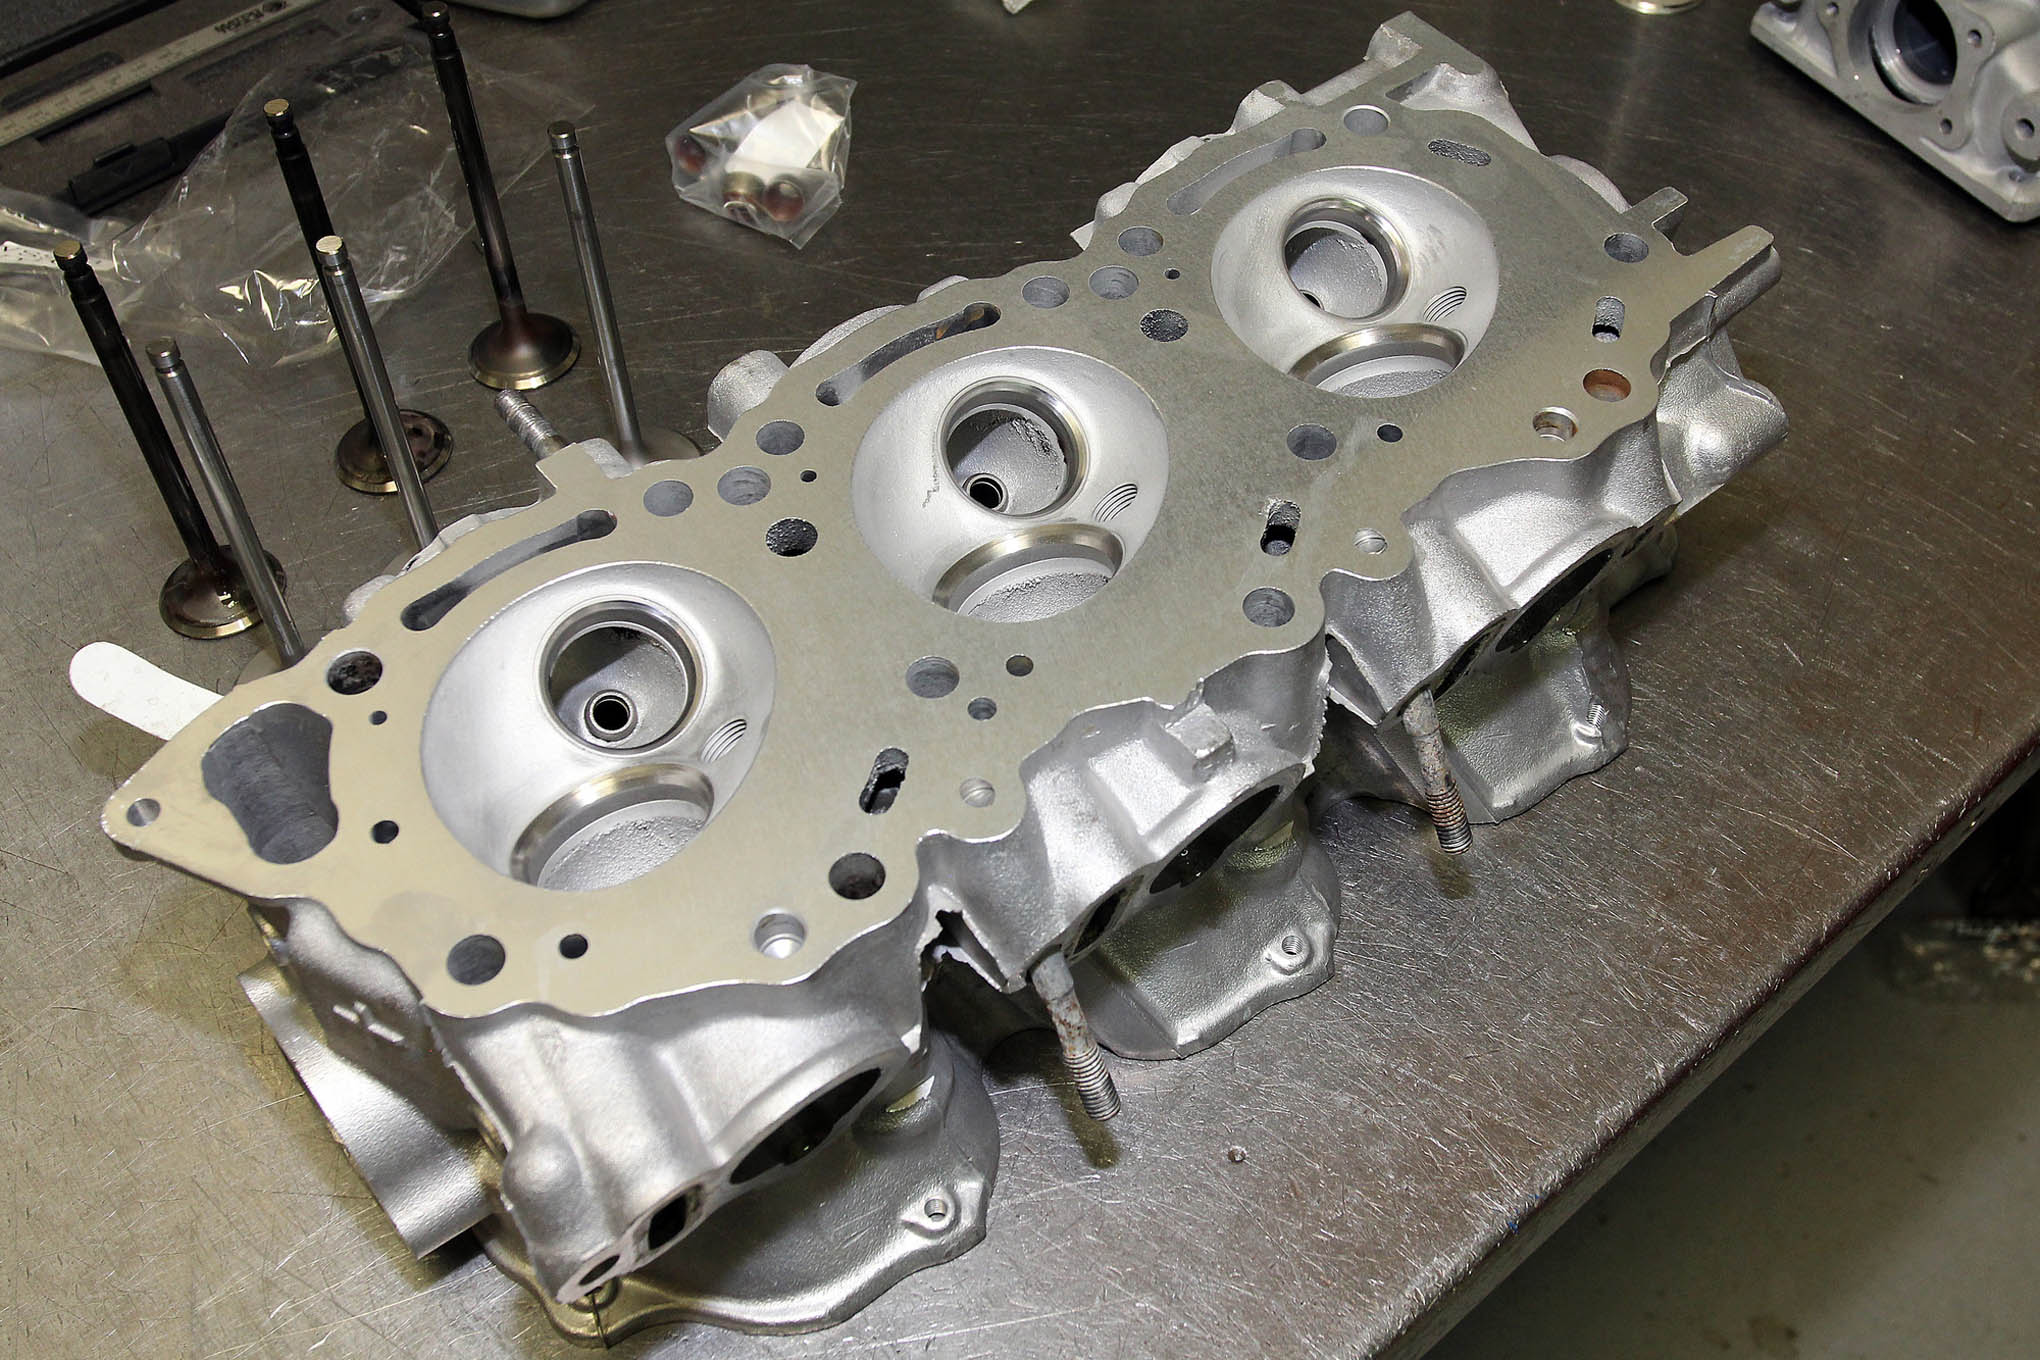 The VG30 series of engines use aluminum overhead cam cylinder heads. An upgraded three-angle valve job is allowed, and definitely recommended to help improve flow into and out of the combustion chambers. But you've got to stick with stock-size valves and any port work is strictly verboten.